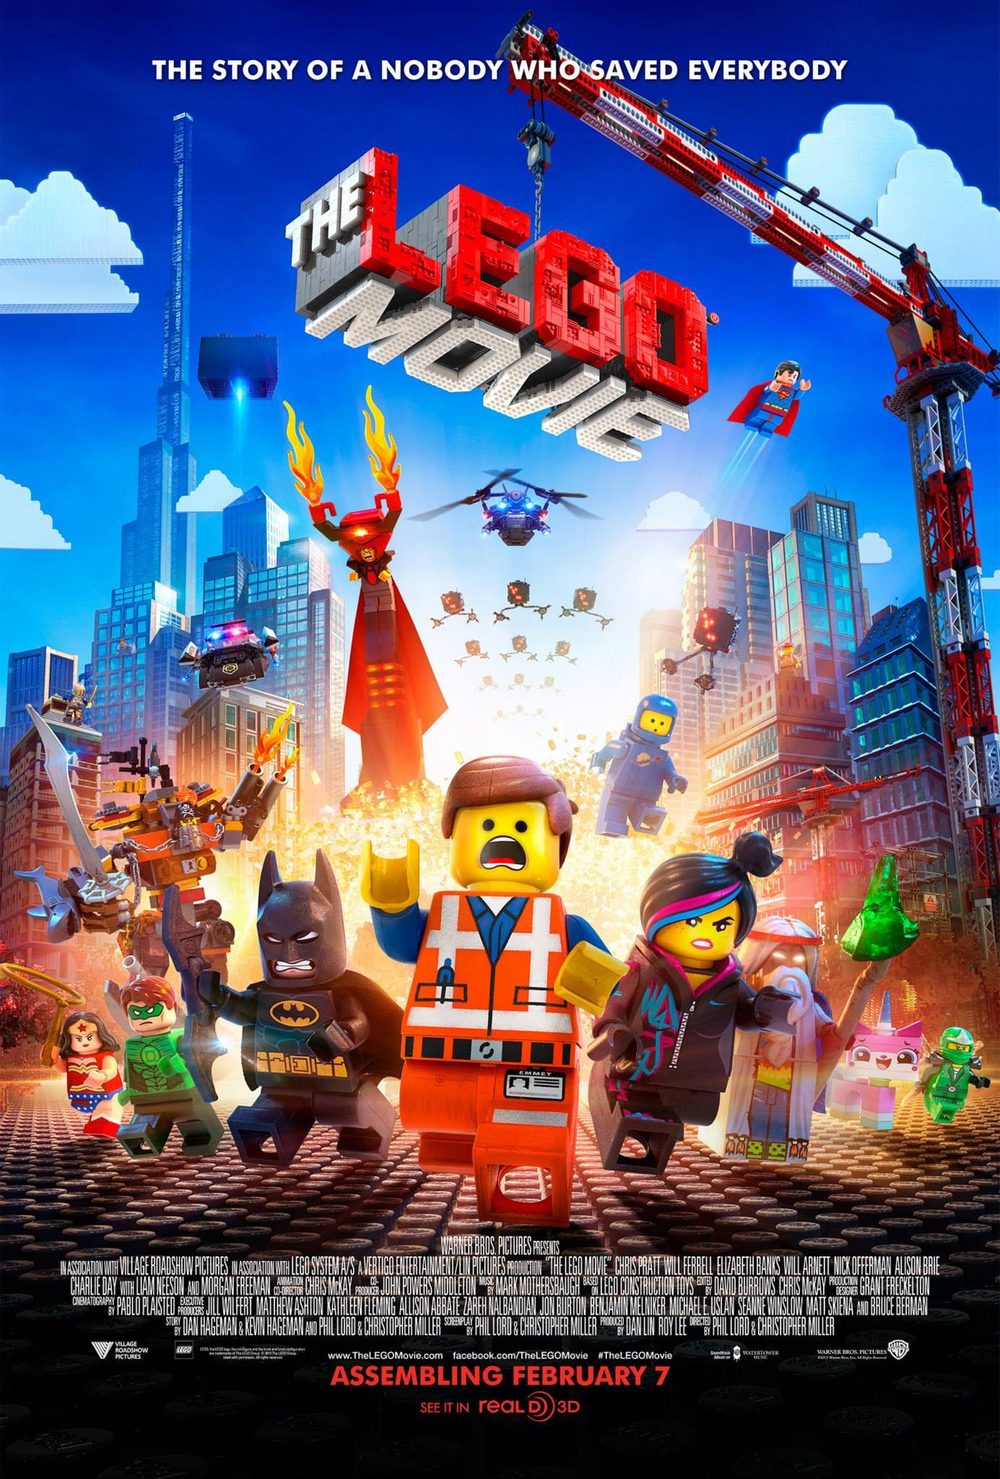 LEGO-Movie-Poster-2014-HIgh-Resolution.jpg